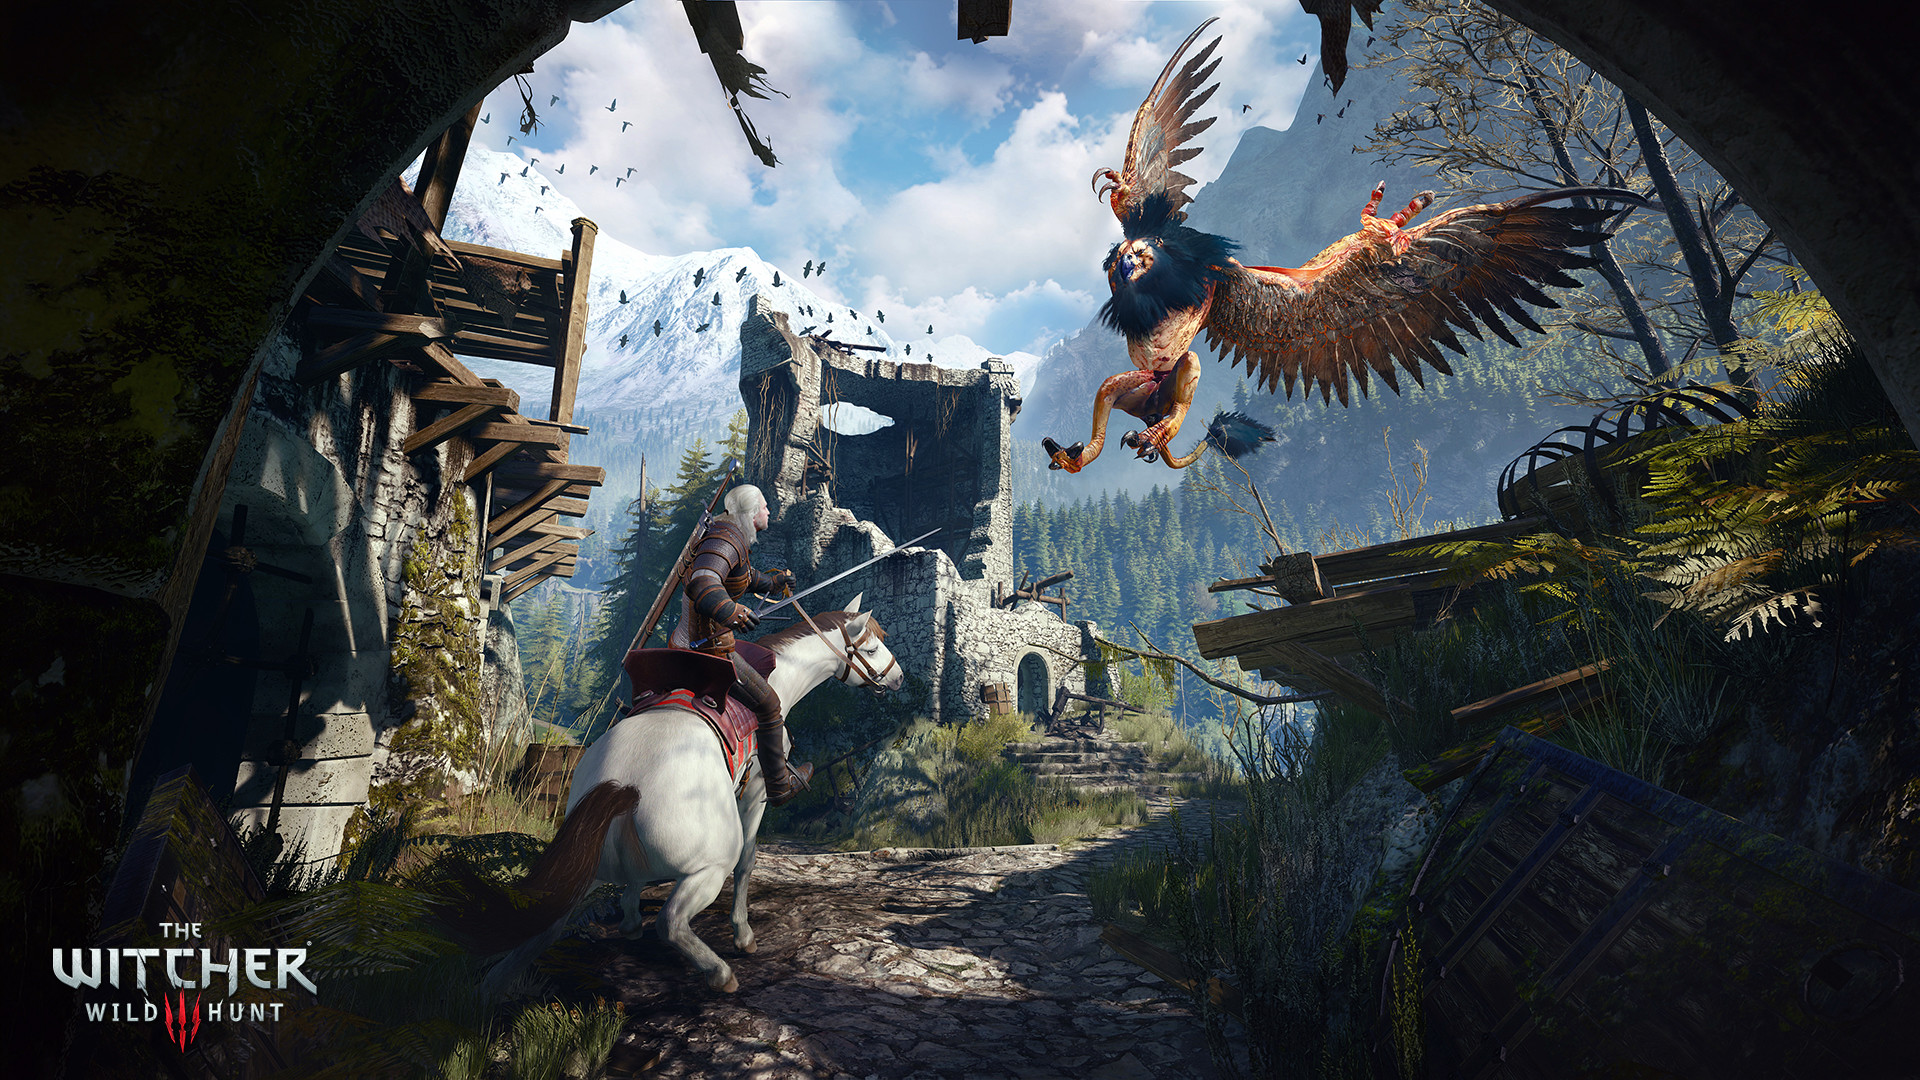 the witcher 3 wild hunt game of the year edition singlelink iso cracked by gog drm-free cpy games release reloaded codex proper hi2u prophet multi langunage full version free for pc 2017 gratis